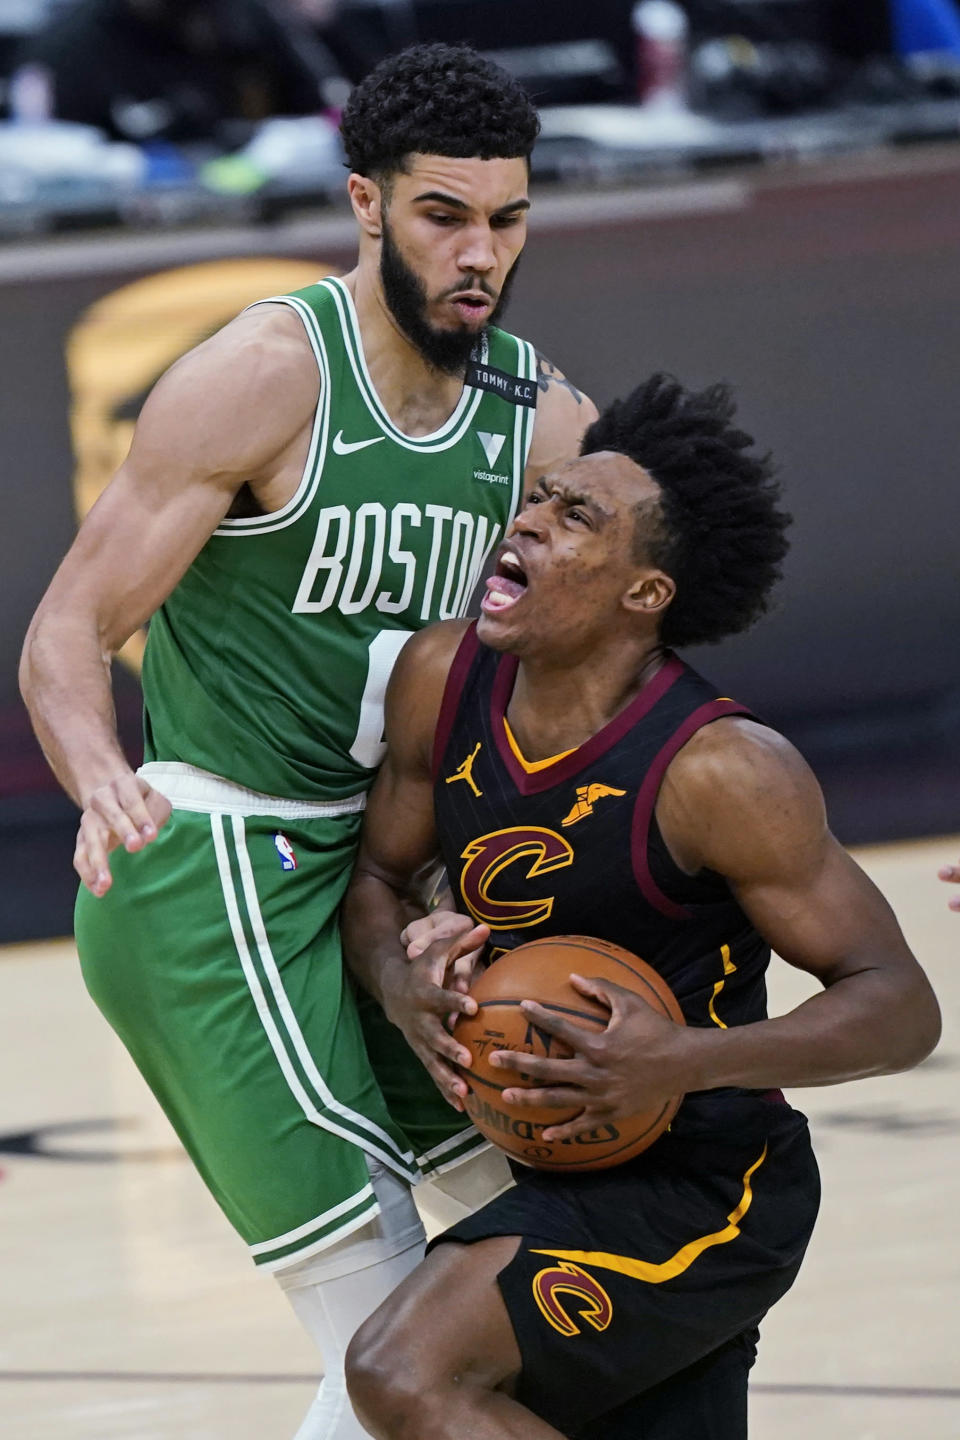 Cleveland Cavaliers' Collin Sexton, right, drives against Boston Celtics' Jayson Tatum during the second half of an NBA basketball game Wednesday, May 12, 2021, in Cleveland. (AP Photo/Tony Dejak)